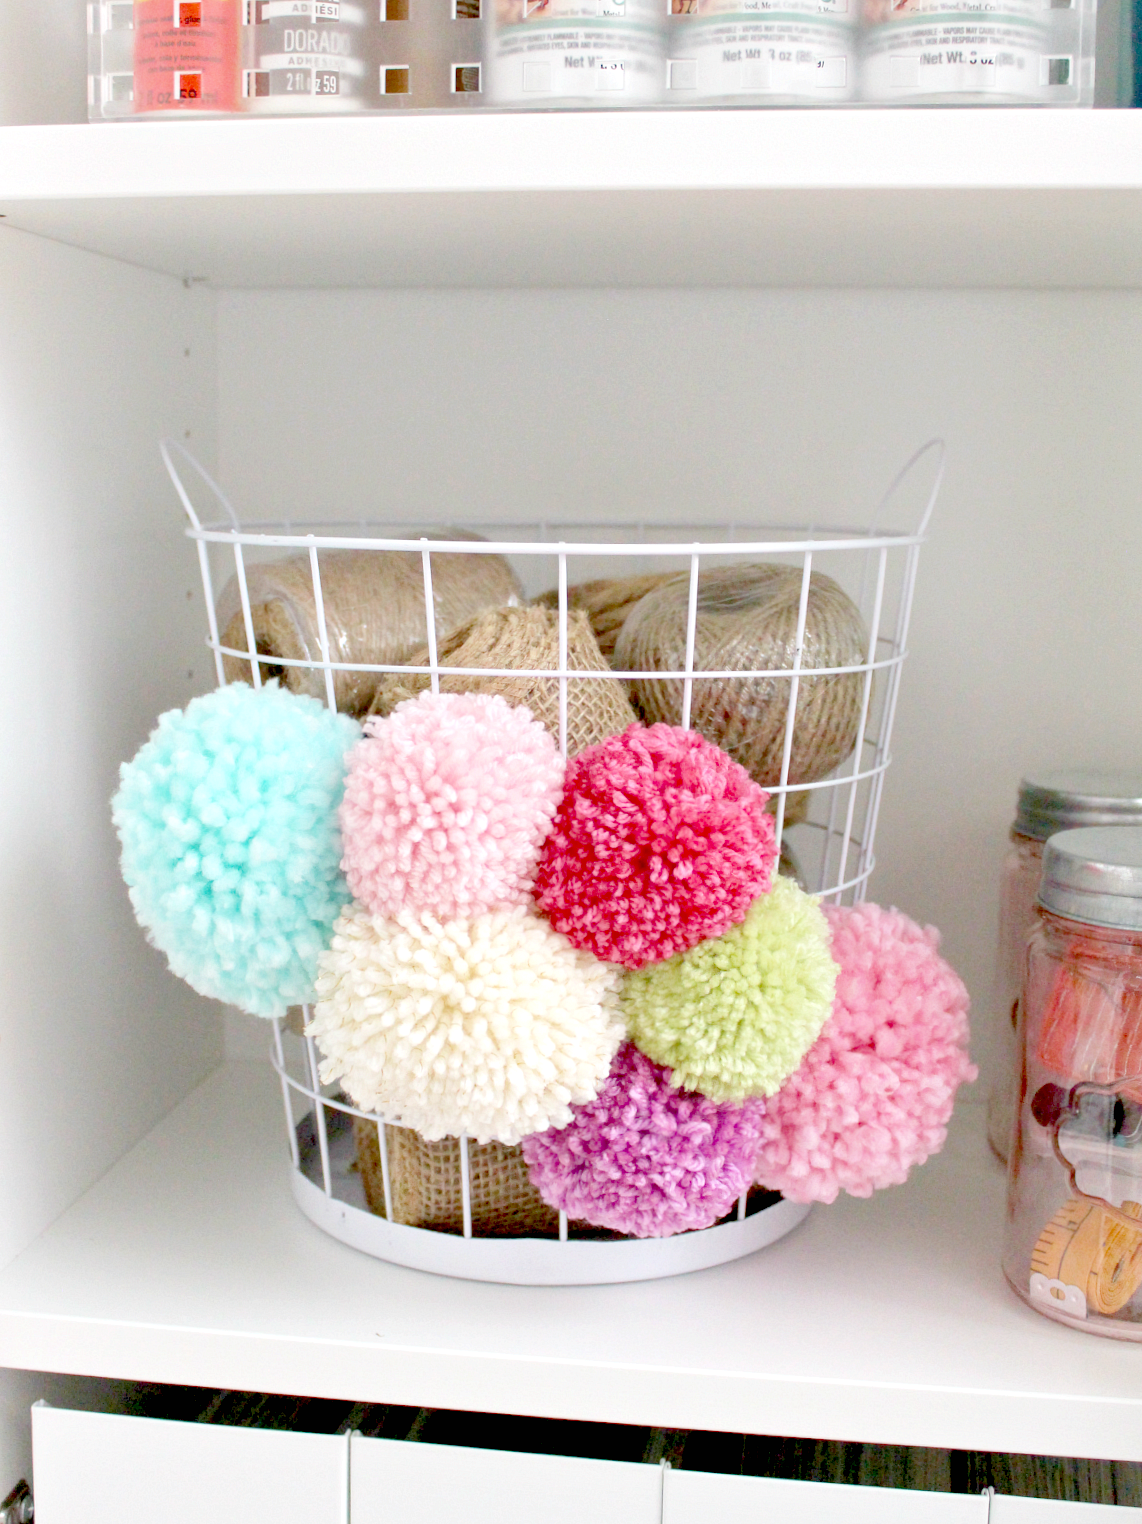 31+ Crafts with popsicle sticks and pom poms ideas in 2021